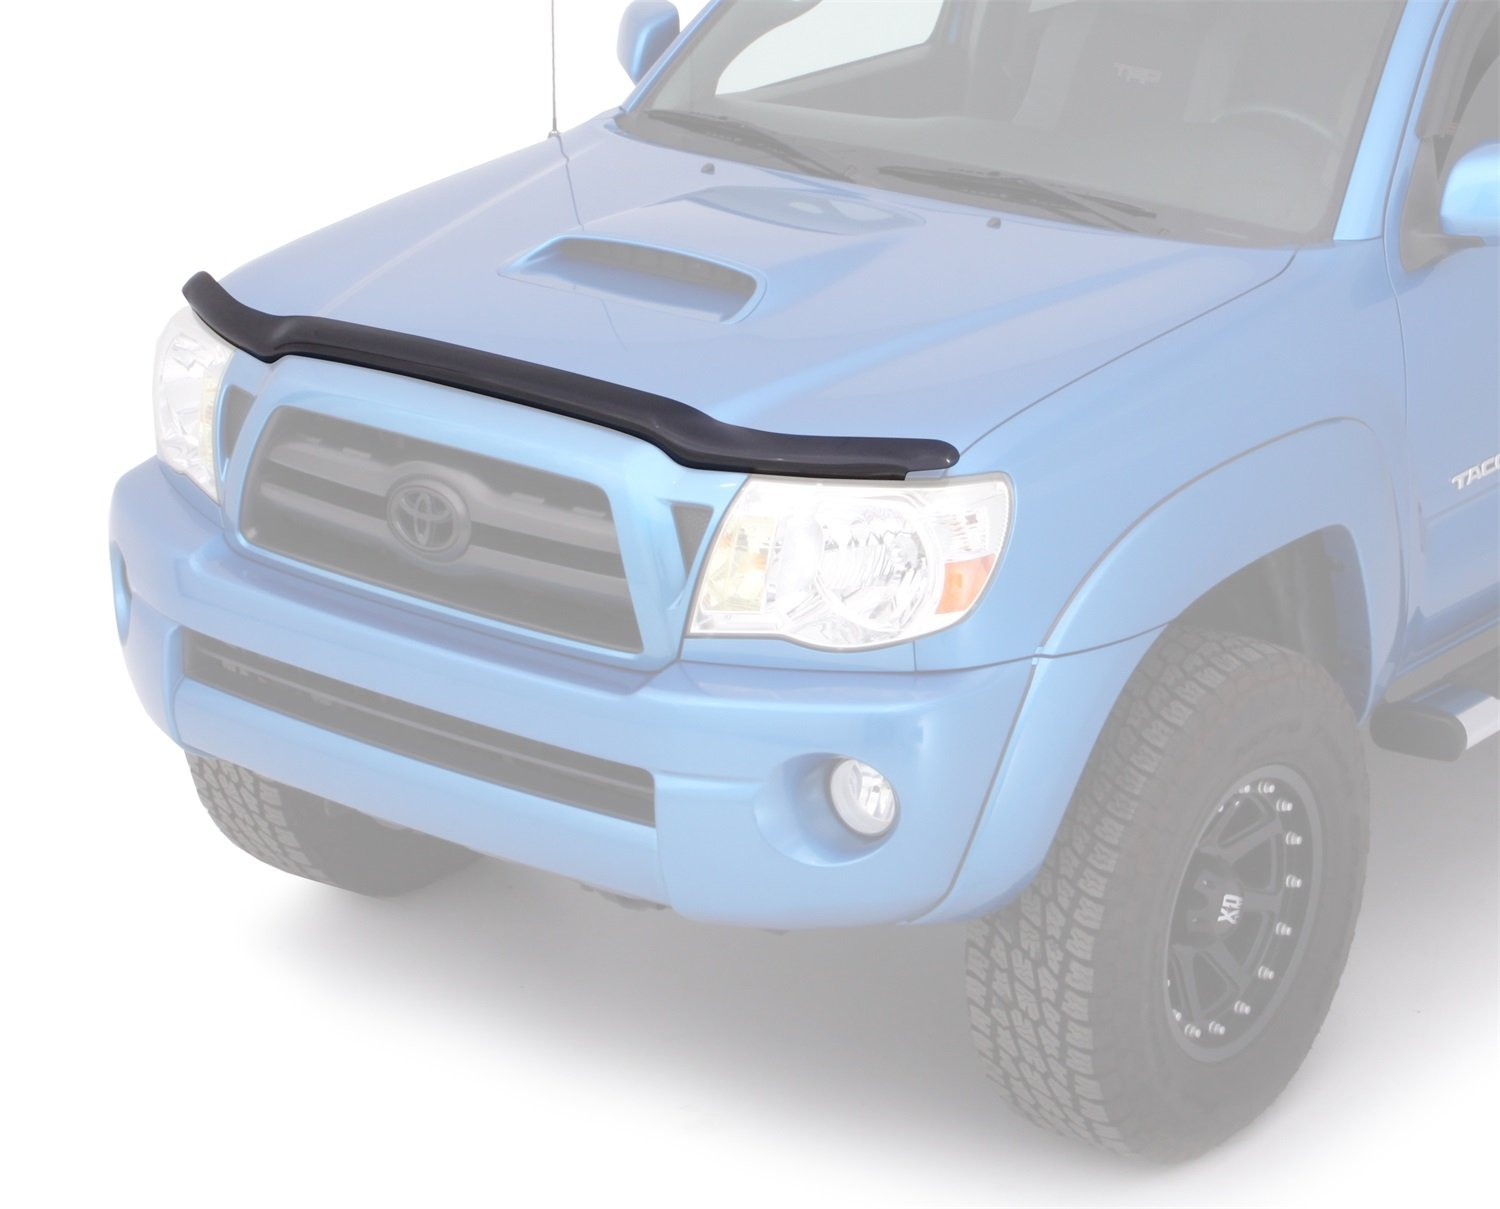 Toyota Tacoma 2015-2018 Service Manual: Air Conditioning System(for Automatic Air Conditioning System)